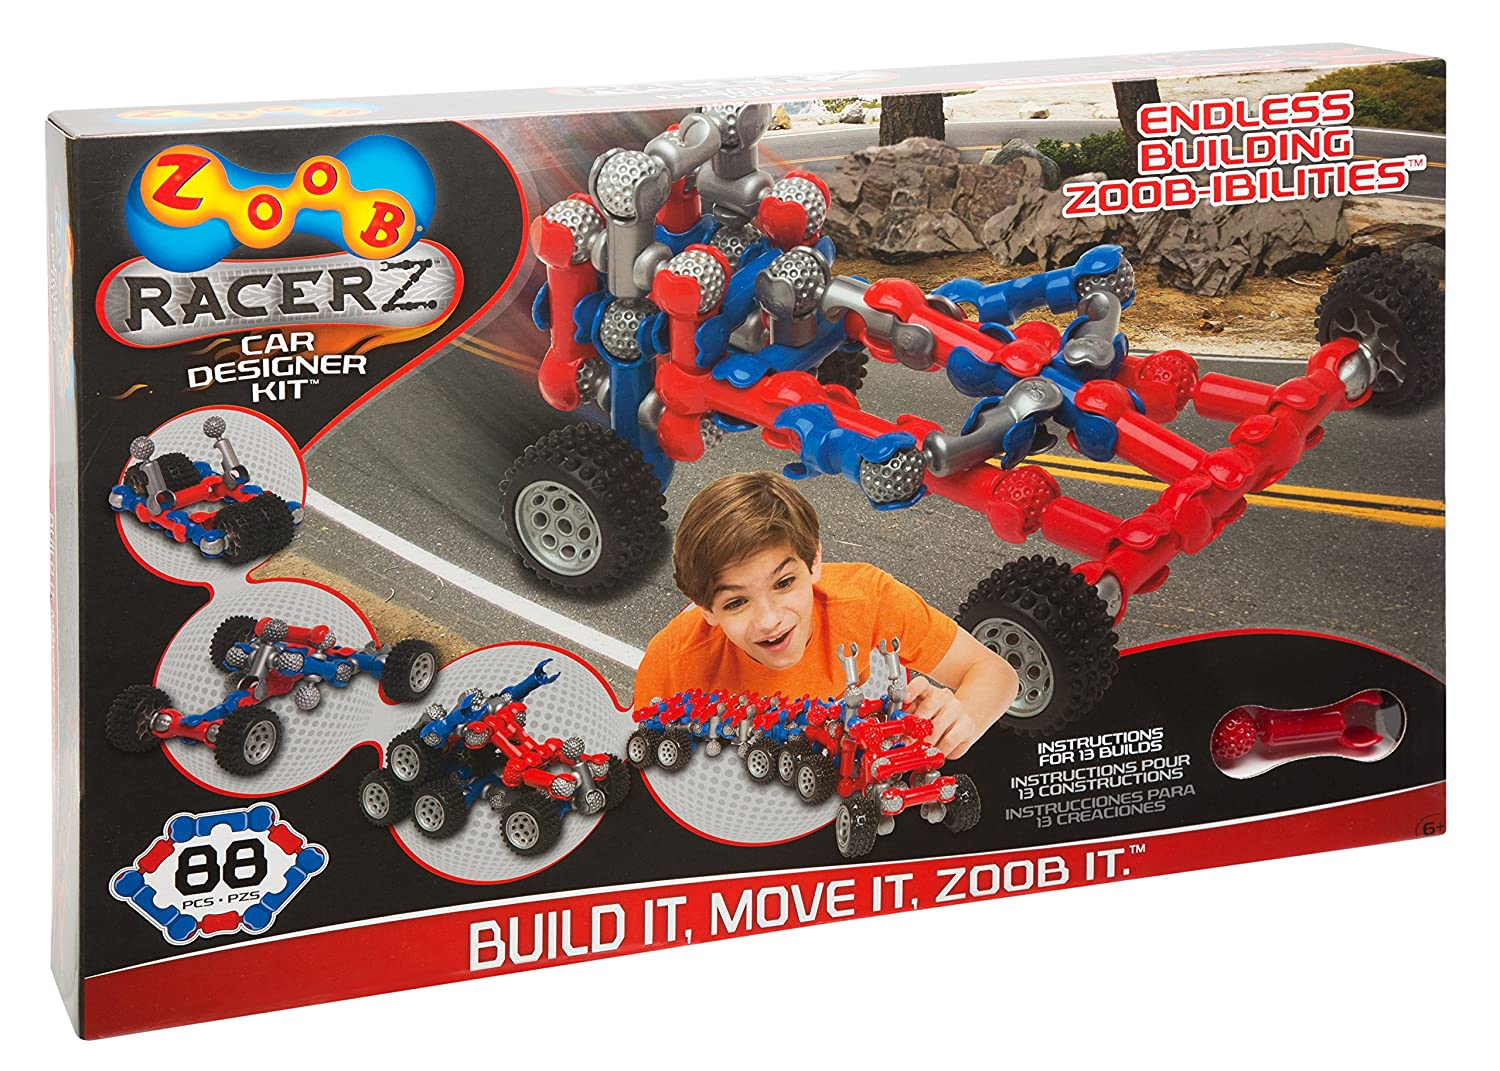 Toys For Big Boys : Toys for big boys the best teen gift canyon